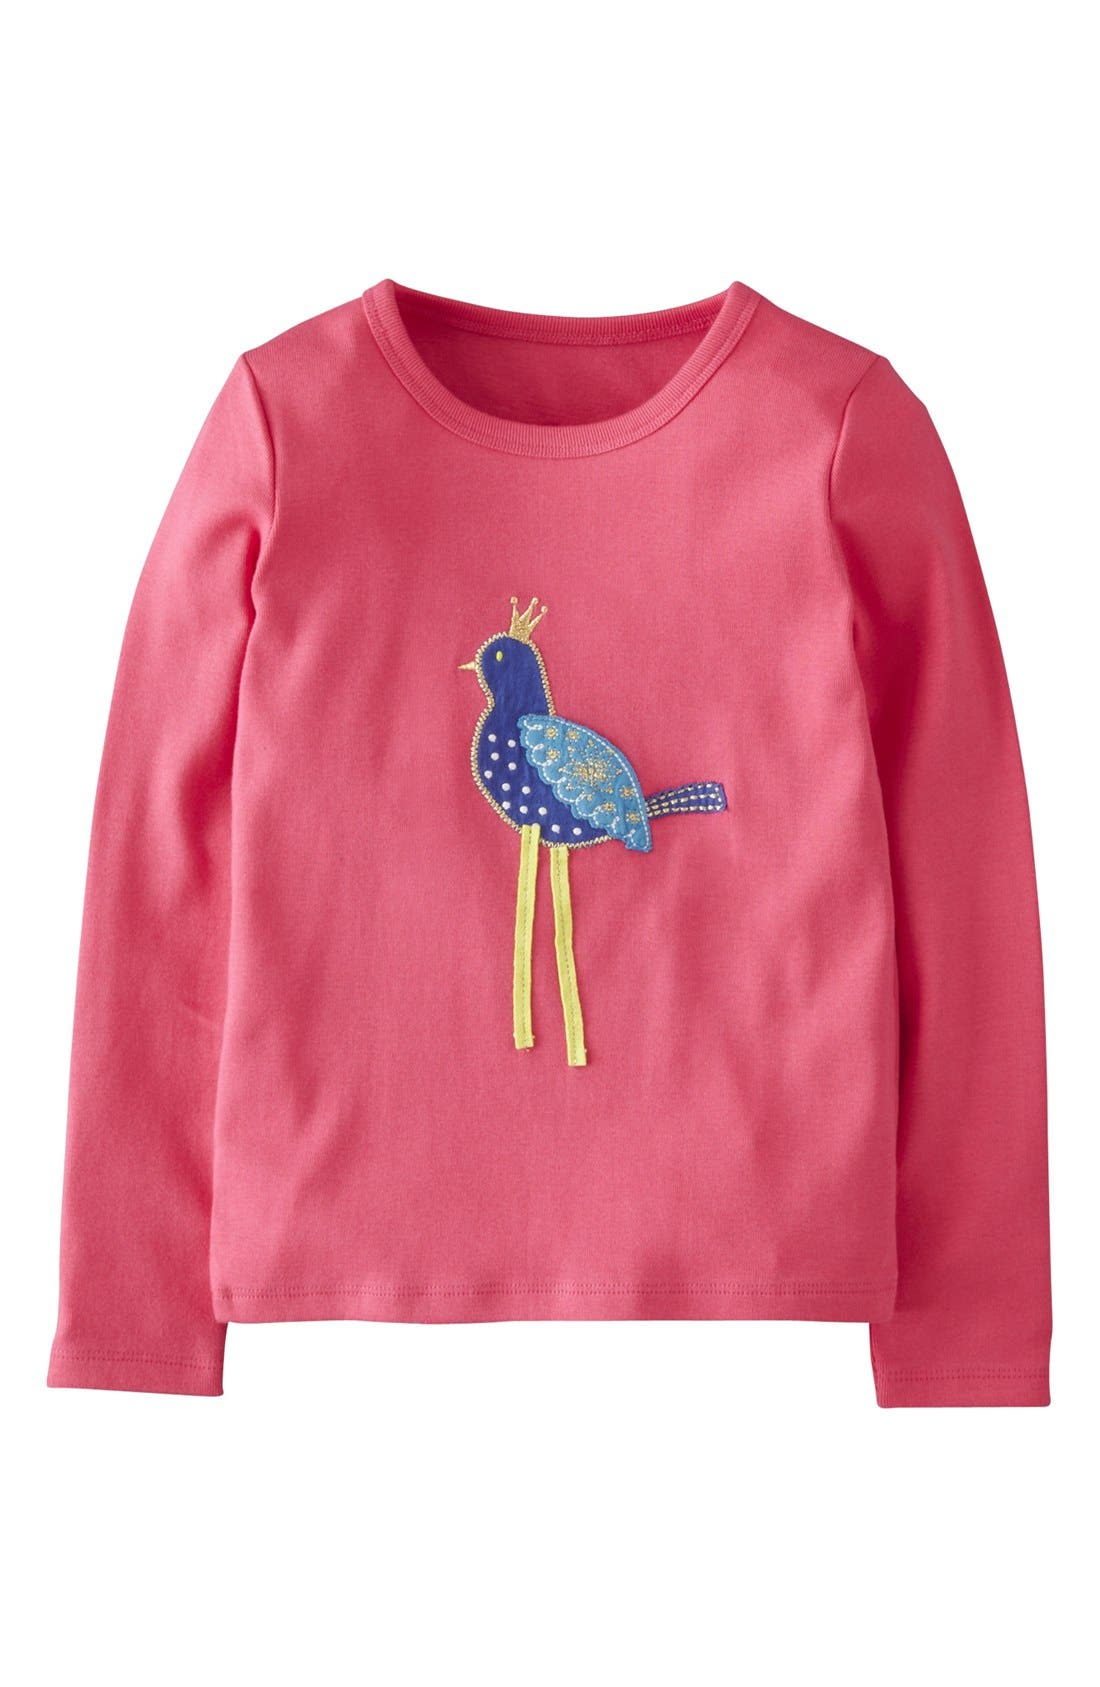 Alternate Image 1 Selected - Mini Boden Appliqué Long Sleeve Tee (Toddler Girls, Little Girls & Big Girls)